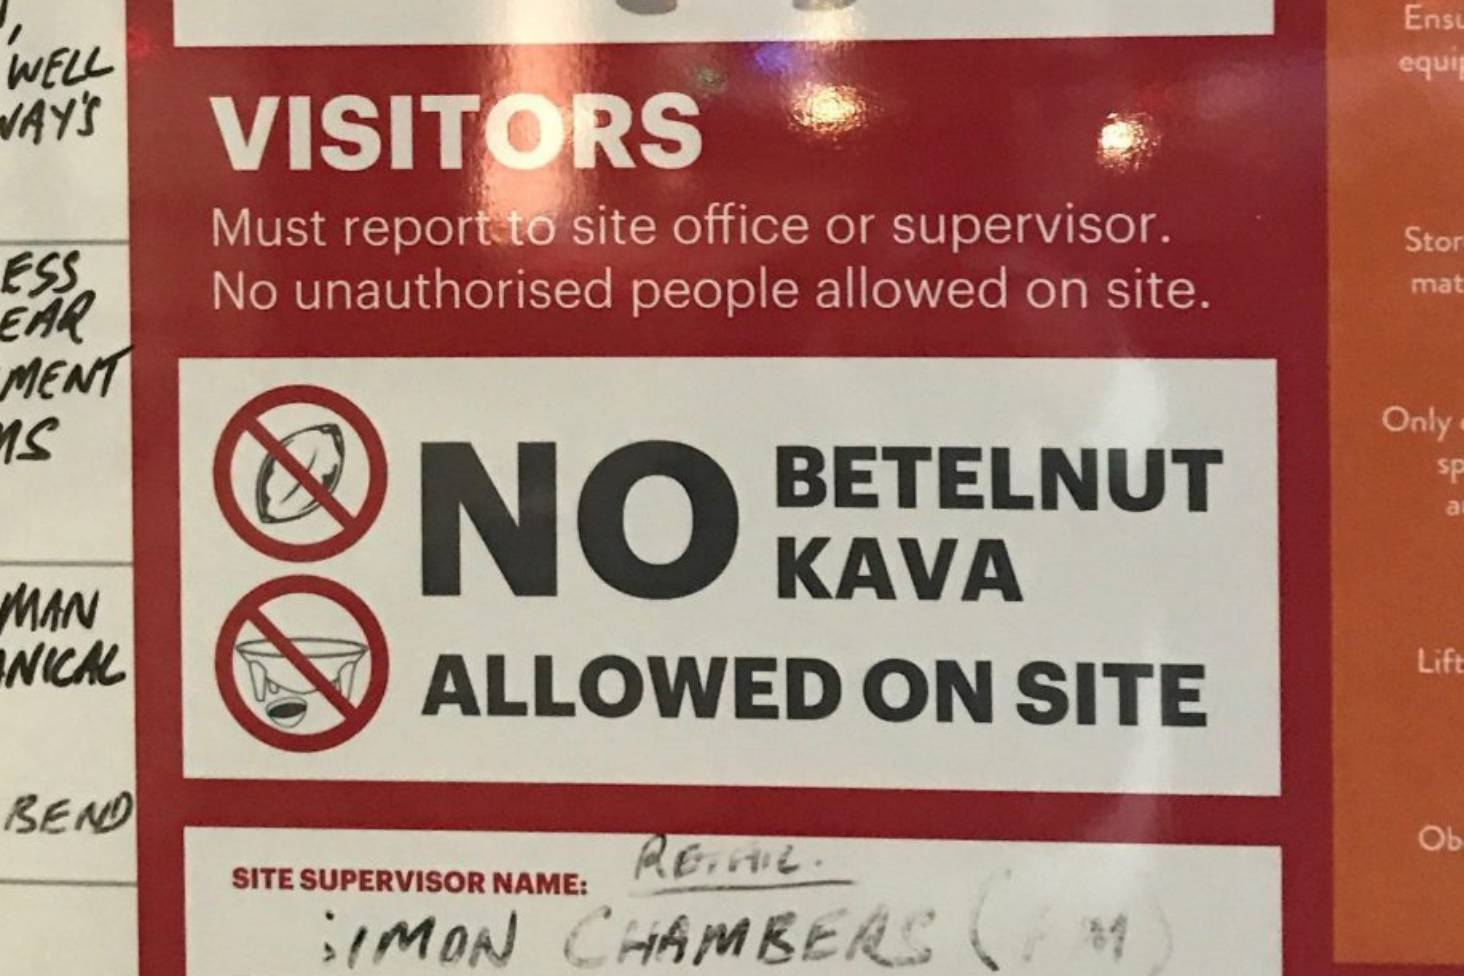 Cancer-causing betelnut and kava banned from construction site